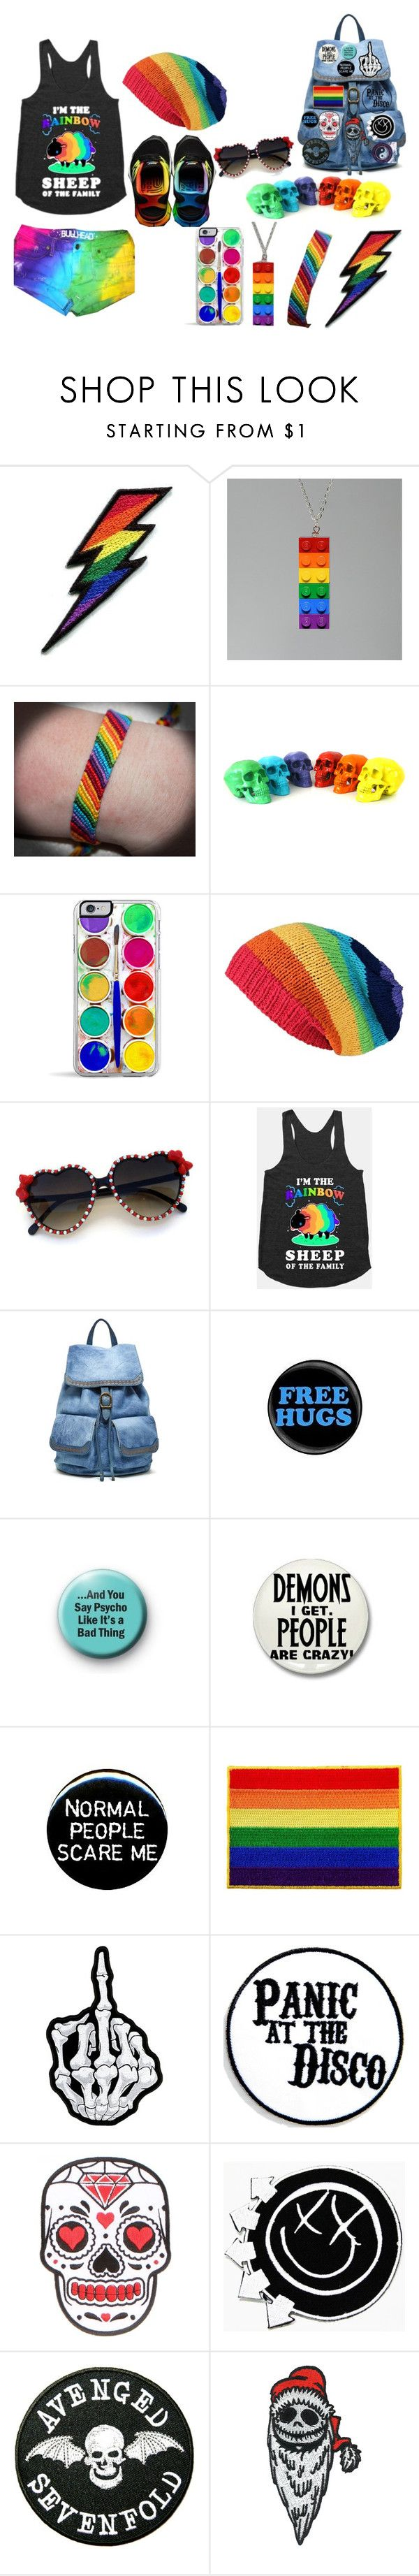 """""""My outfit for the #GayPrideFestival"""" by batman-nat ❤ liked on Polyvore featuring Retrò, Old Trend, Burton, rainbow, gay, pride and gaypride"""